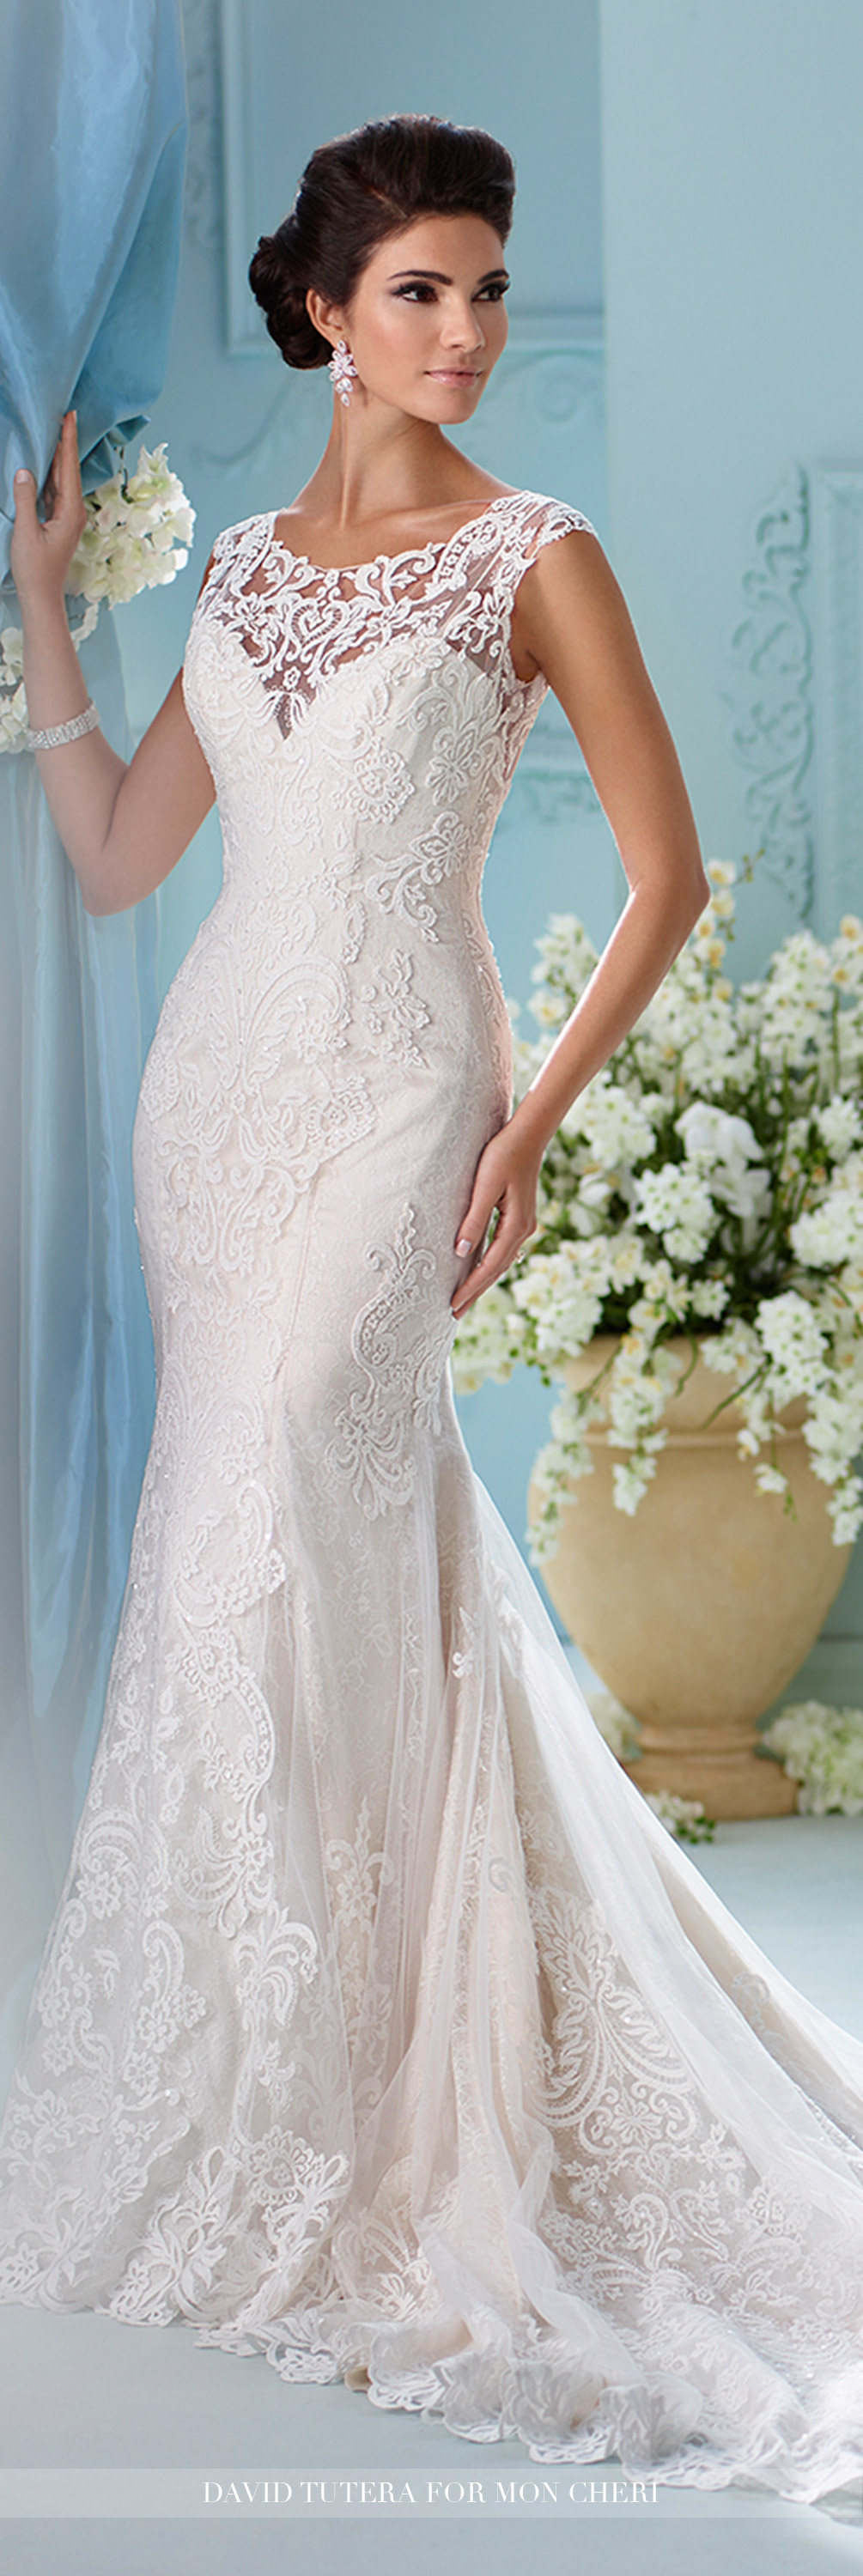 Fit and flare lace wedding dress  Lace Fit u Flare Plunging Sweetheart Neckline Wedding Dress